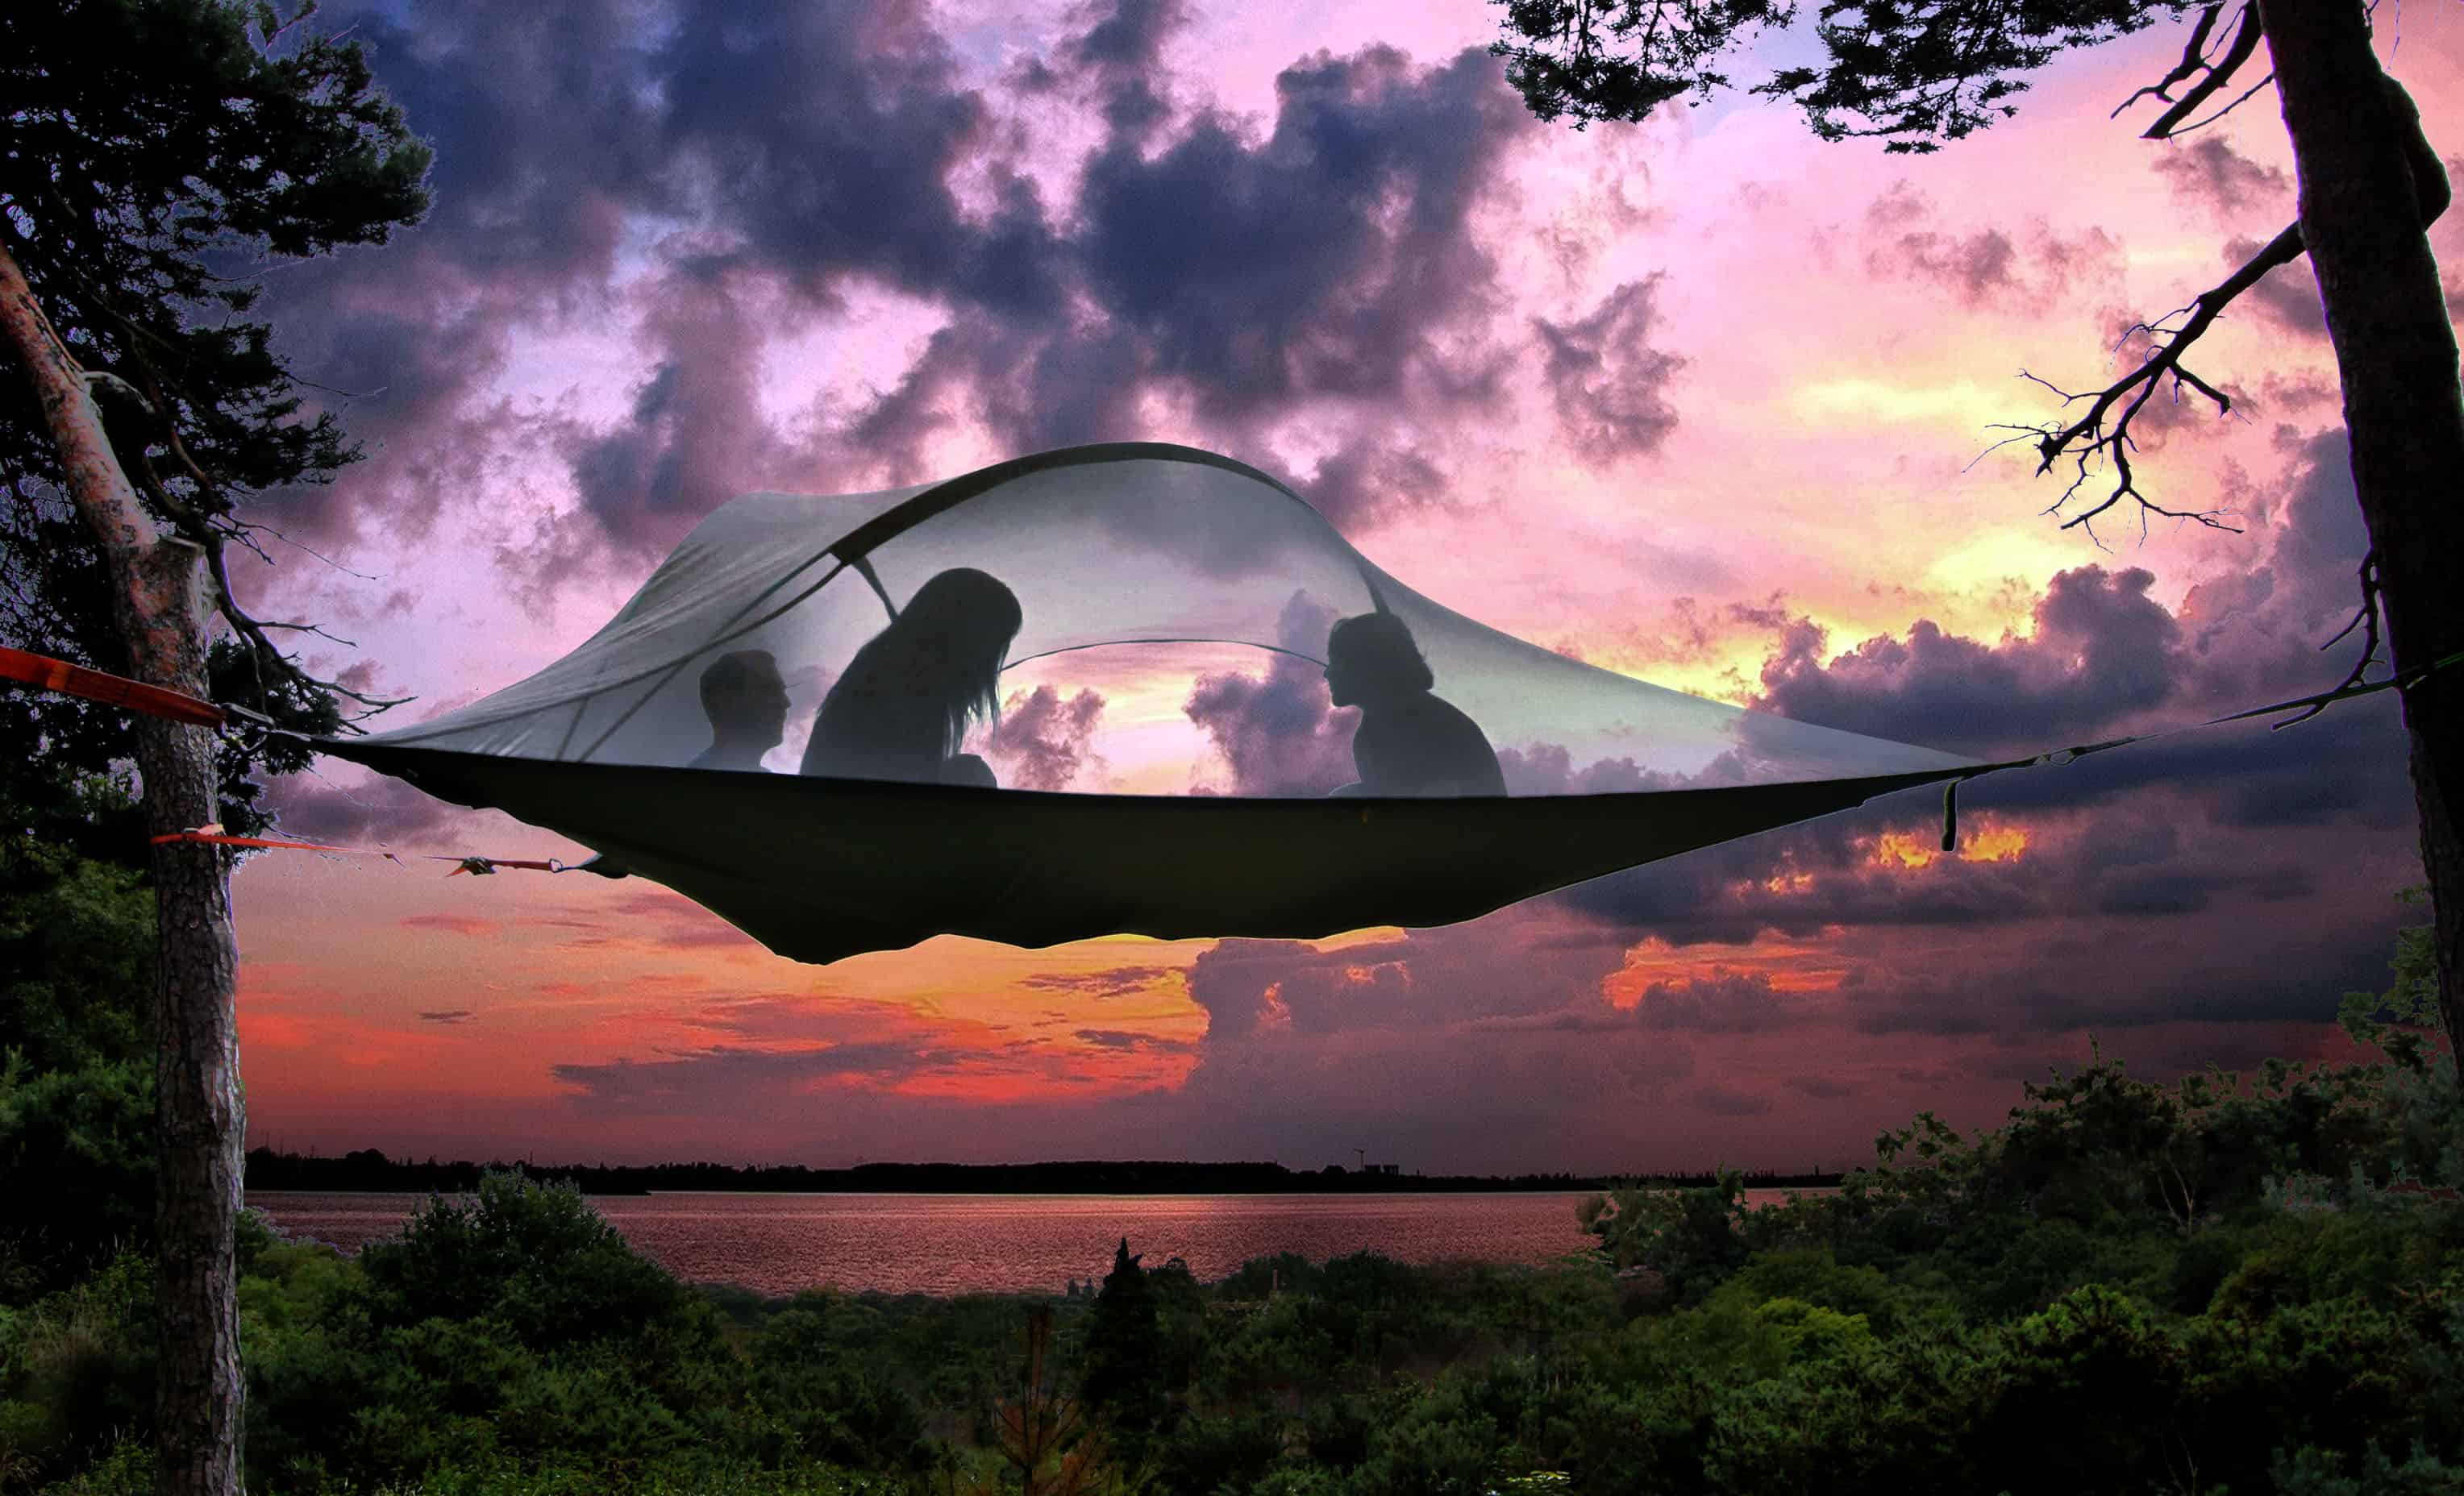 Tentsile Stingray tent Tree tent Outdoor